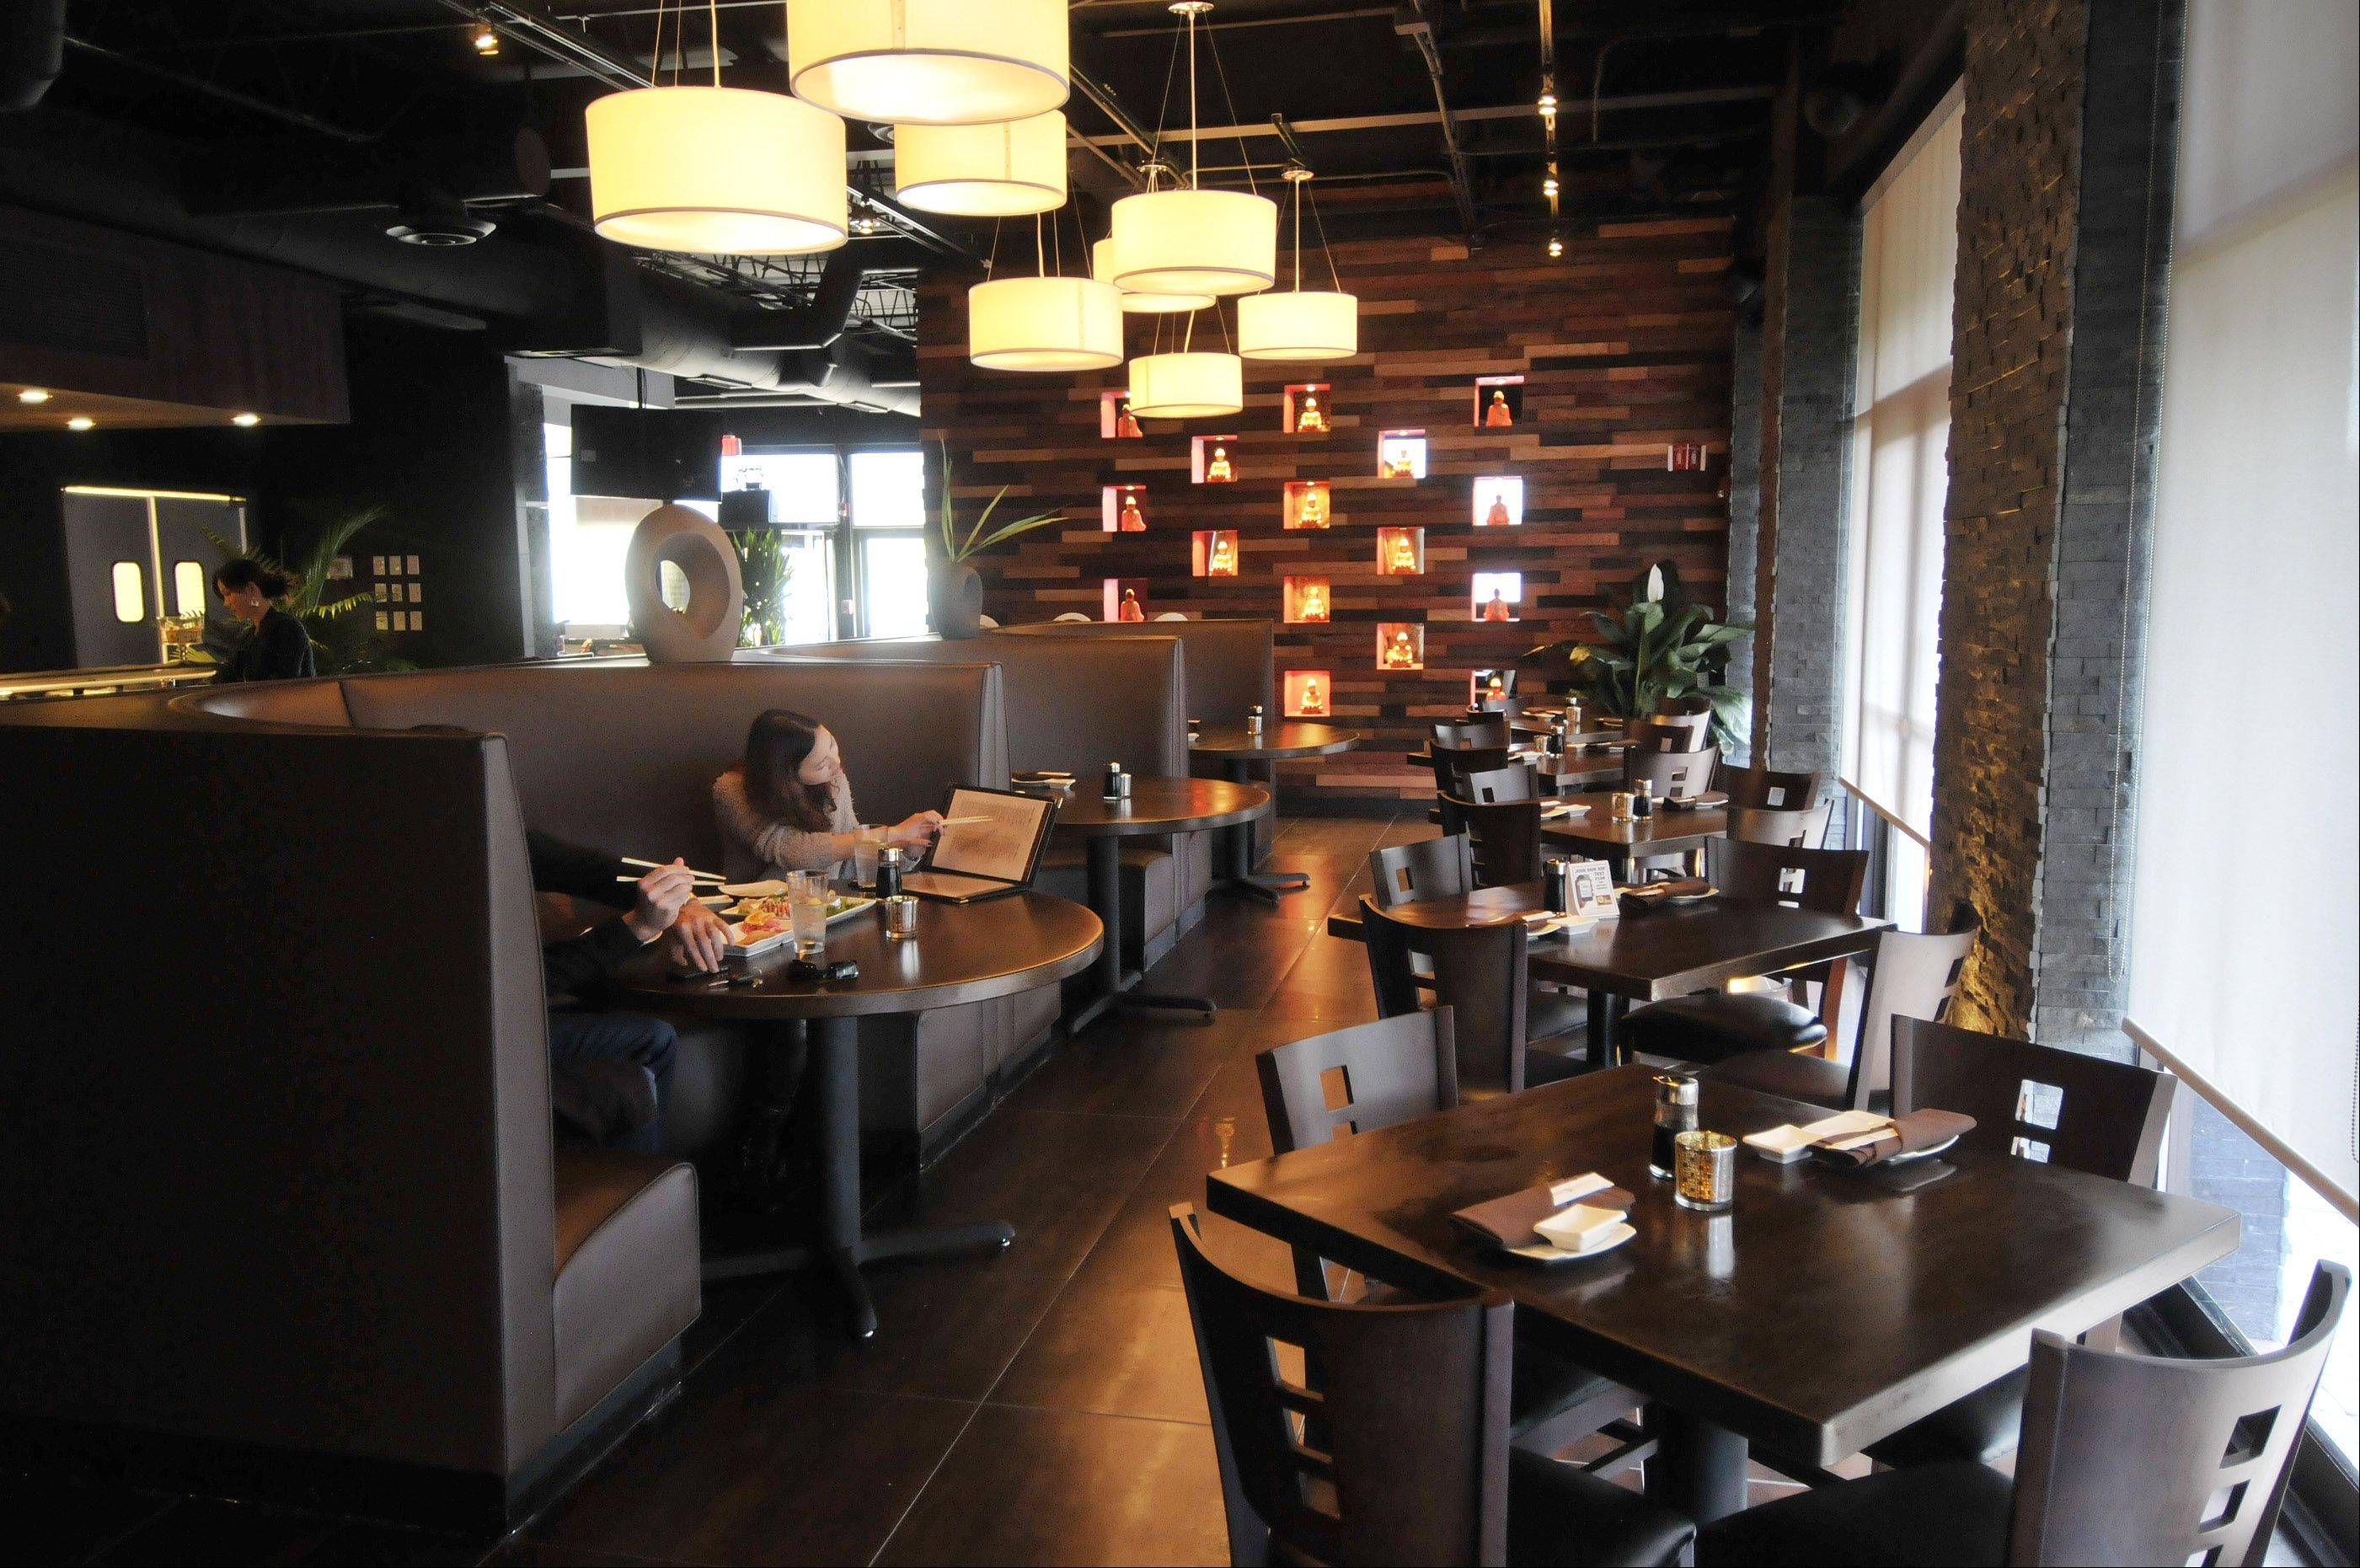 The dining room at Dao Sushi & Thai has a modern, upscale vibe.